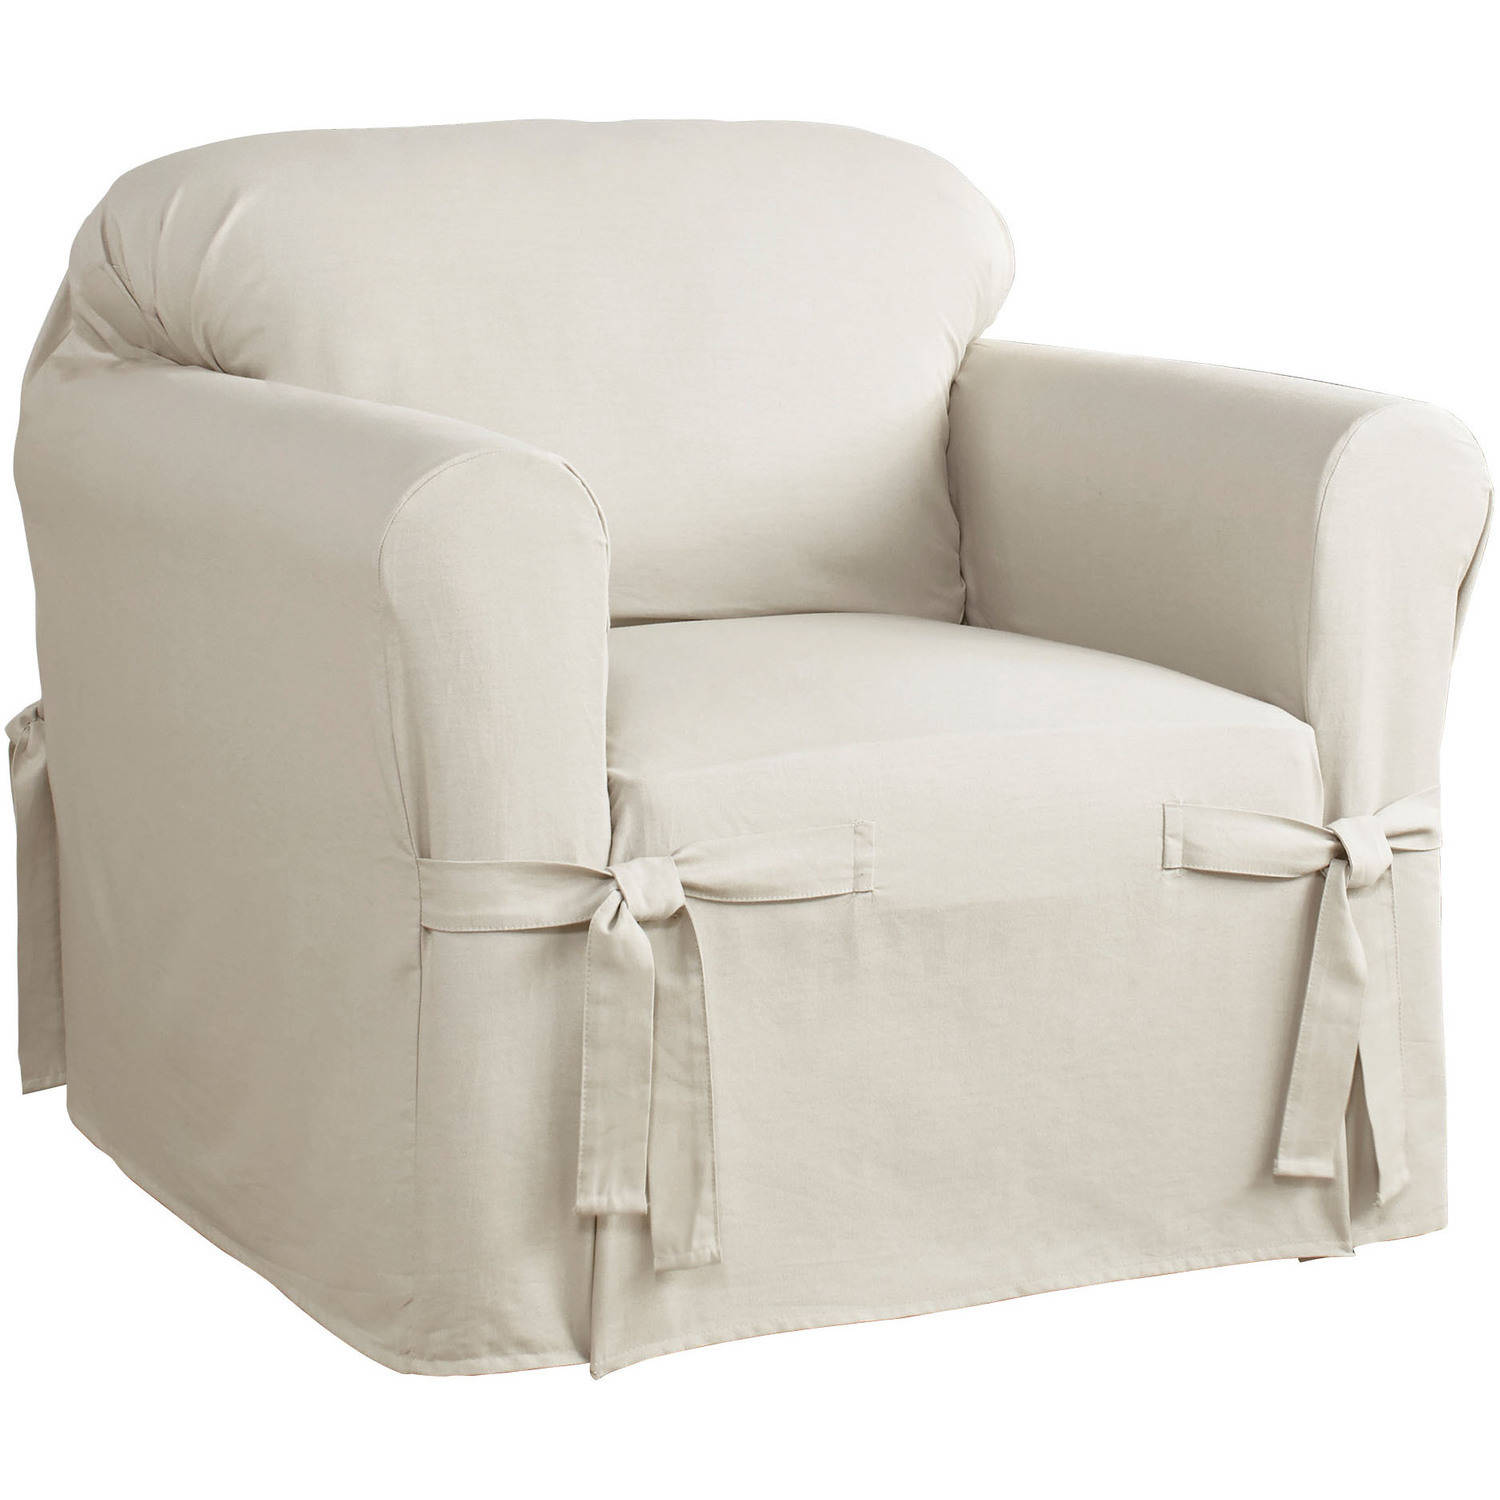 Slipcover For Oversized Chair And Ottoman Serta Relaxed Fit Cotton Duck Furniture Slipcover Chair 1 Piece Box Cushion